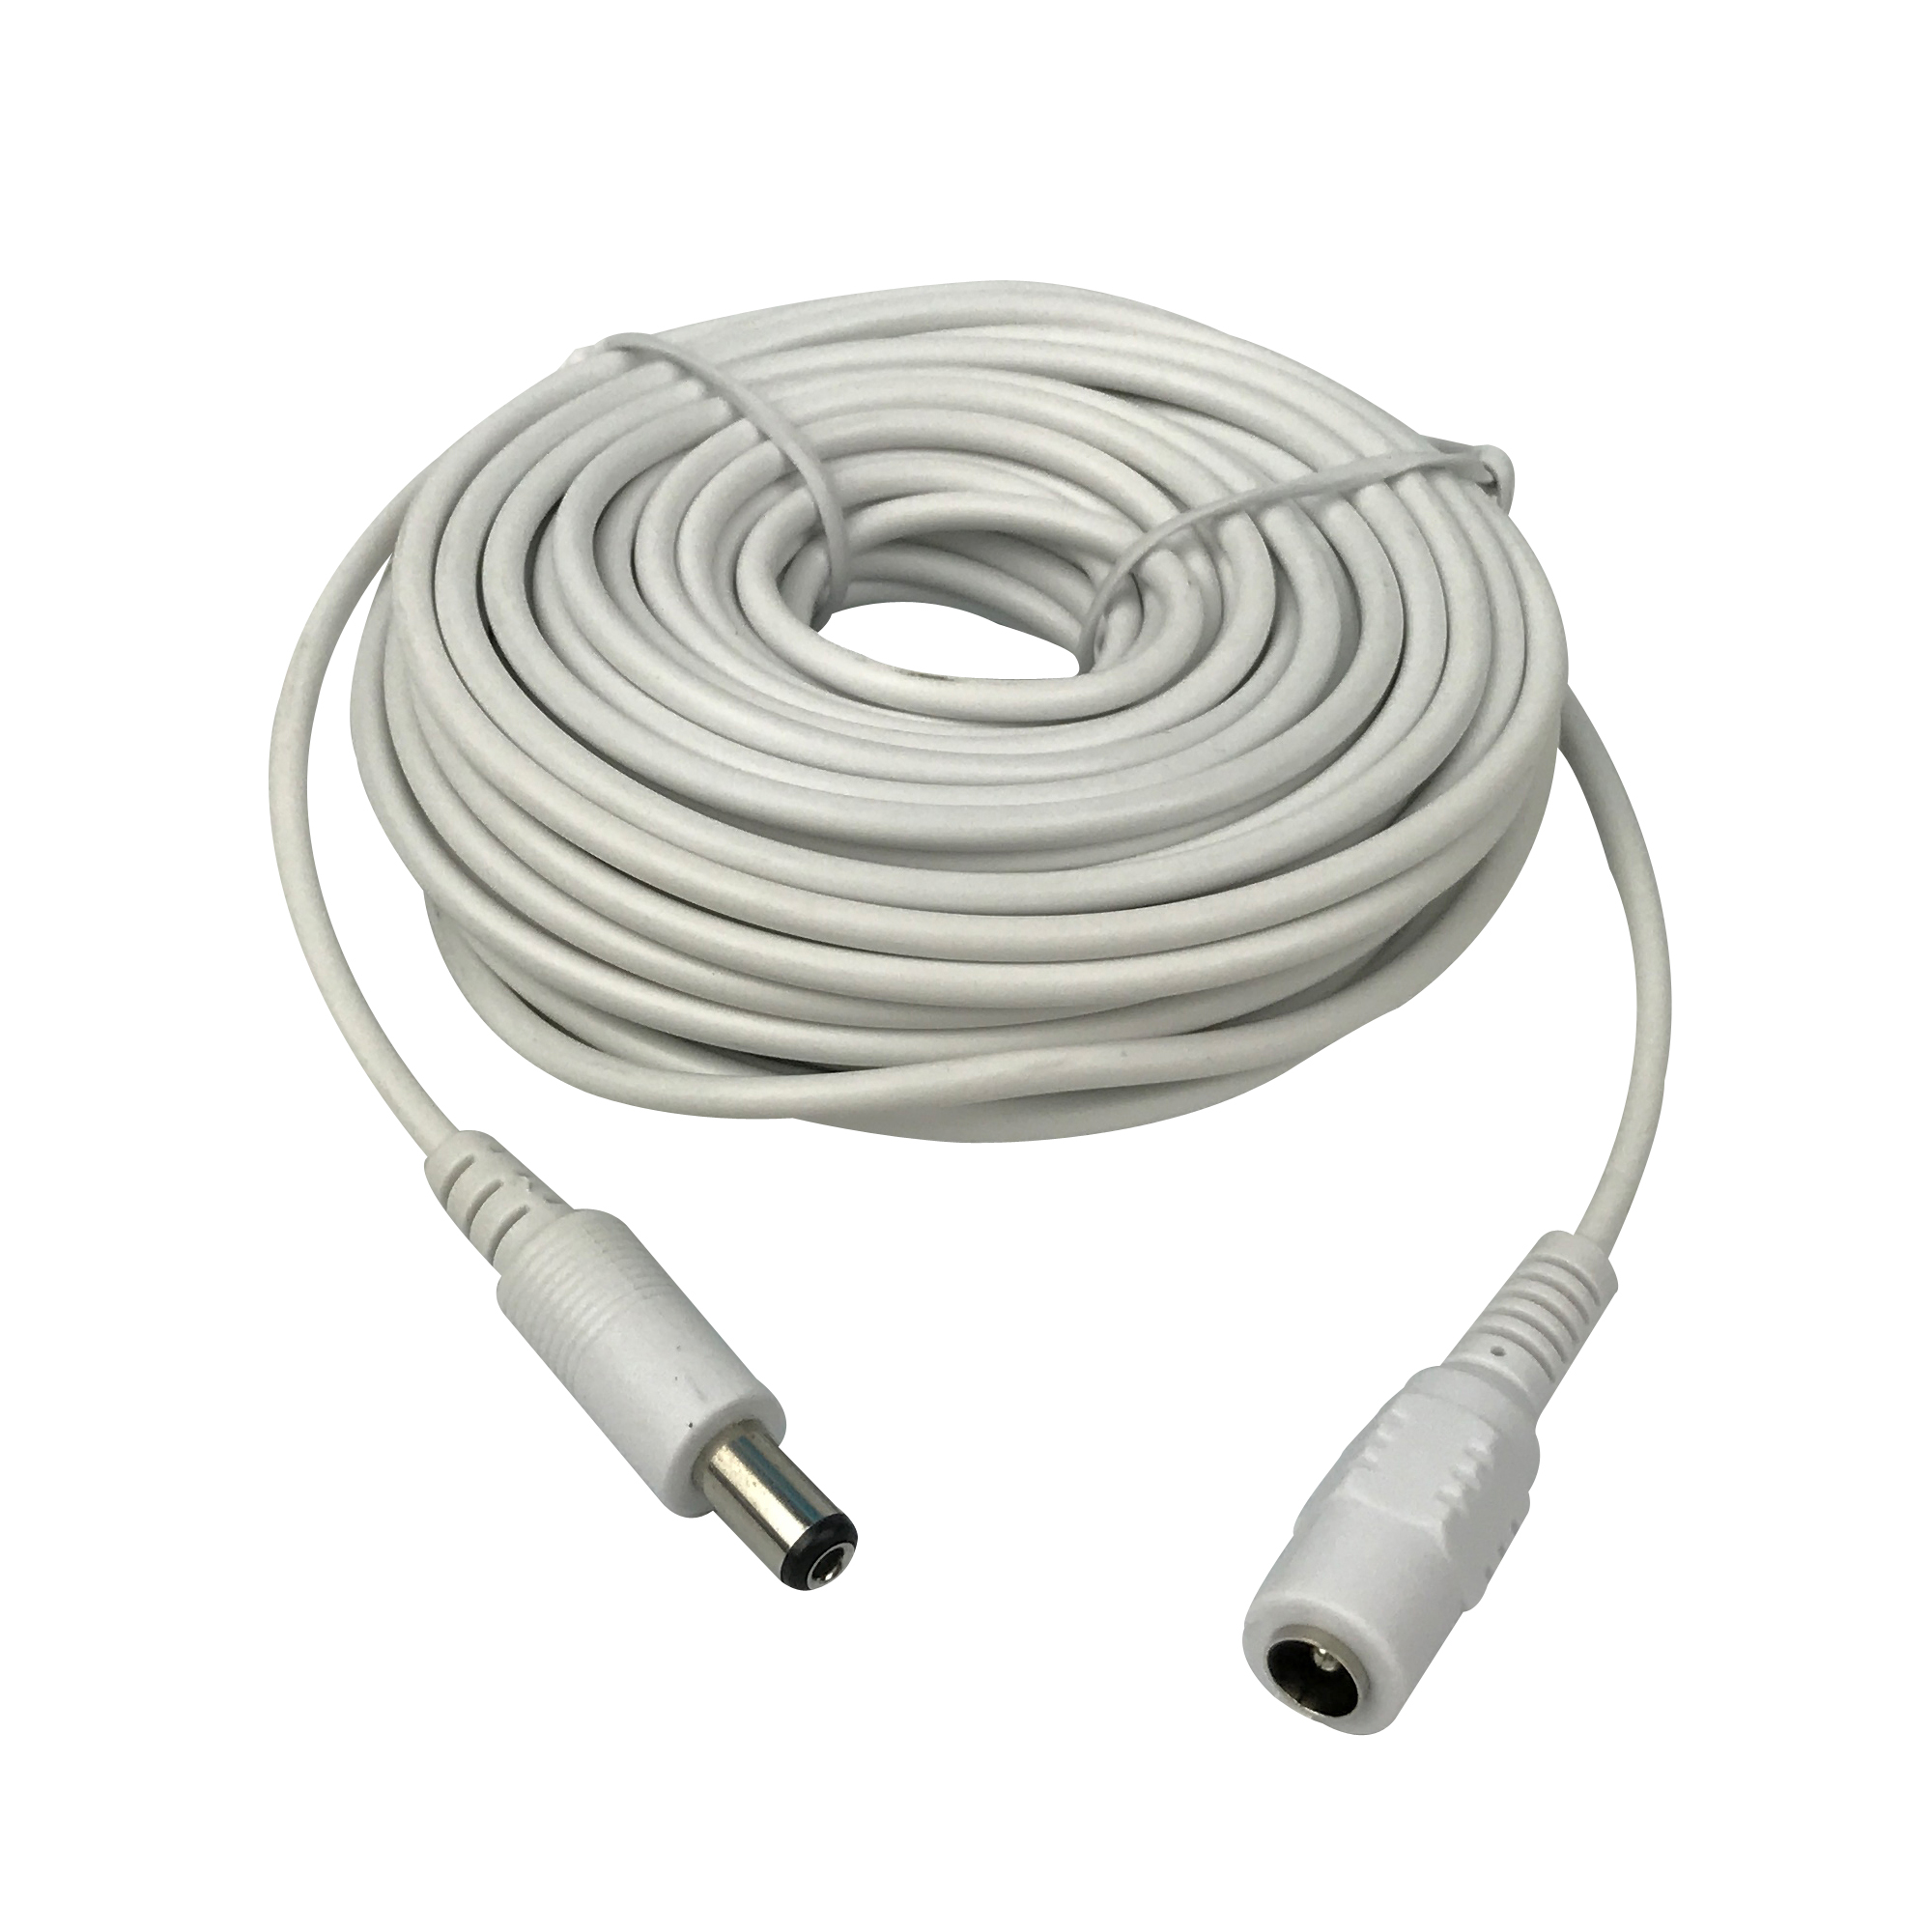 CCTV 10m(30ft) 2.1x5.5mm Dc 12v Power Extension Cable for Audio Security Cameras Ip Camera Dvr Standalone white colorCCTV 10m(30ft) 2.1x5.5mm Dc 12v Power Extension Cable for Audio Security Cameras Ip Camera Dvr Standalone white color